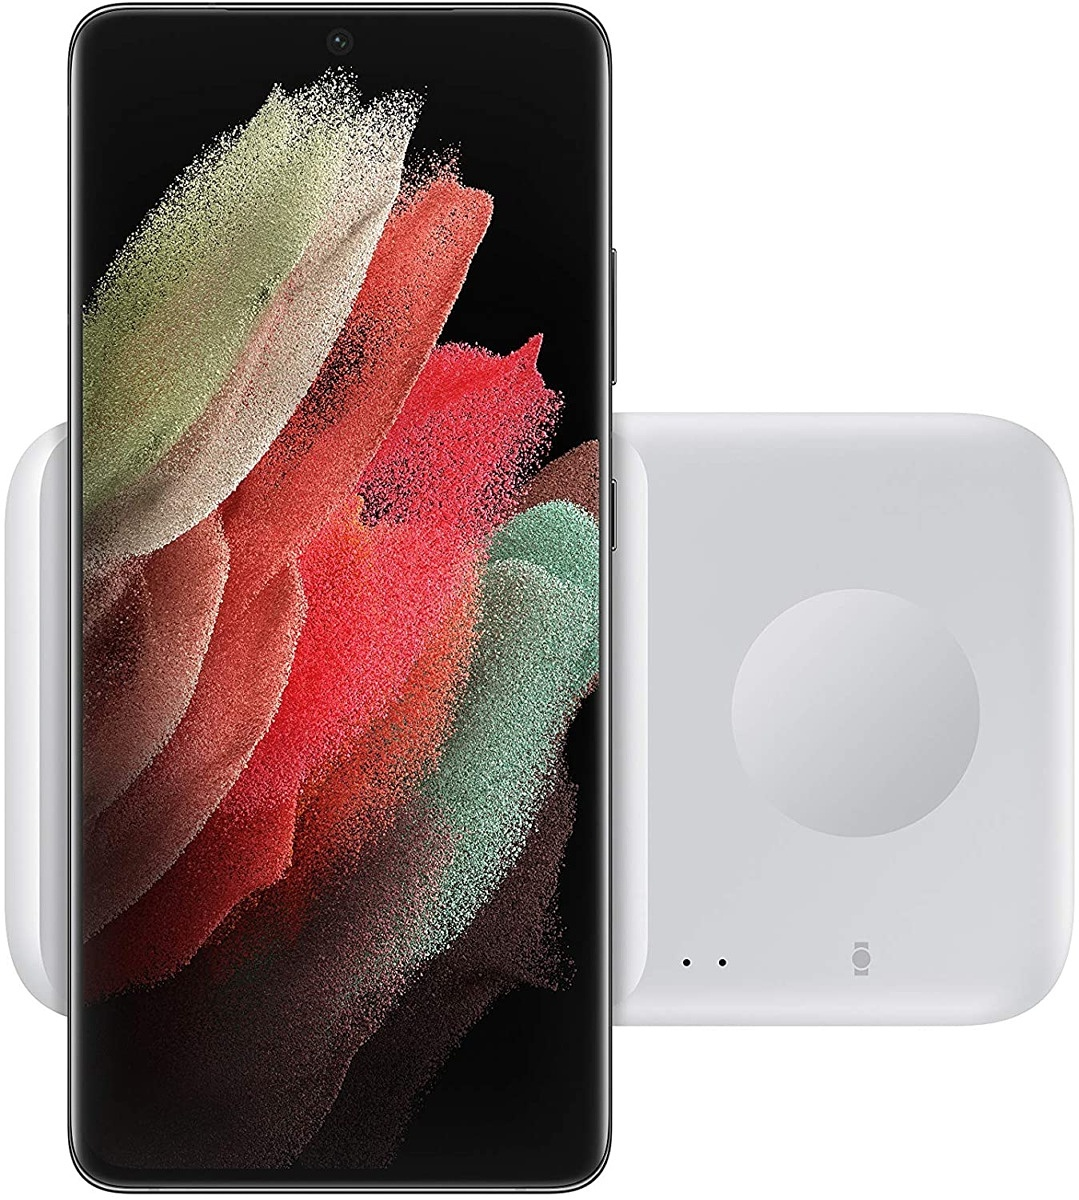 Samsung Fast Charge Pad DUO (2021)